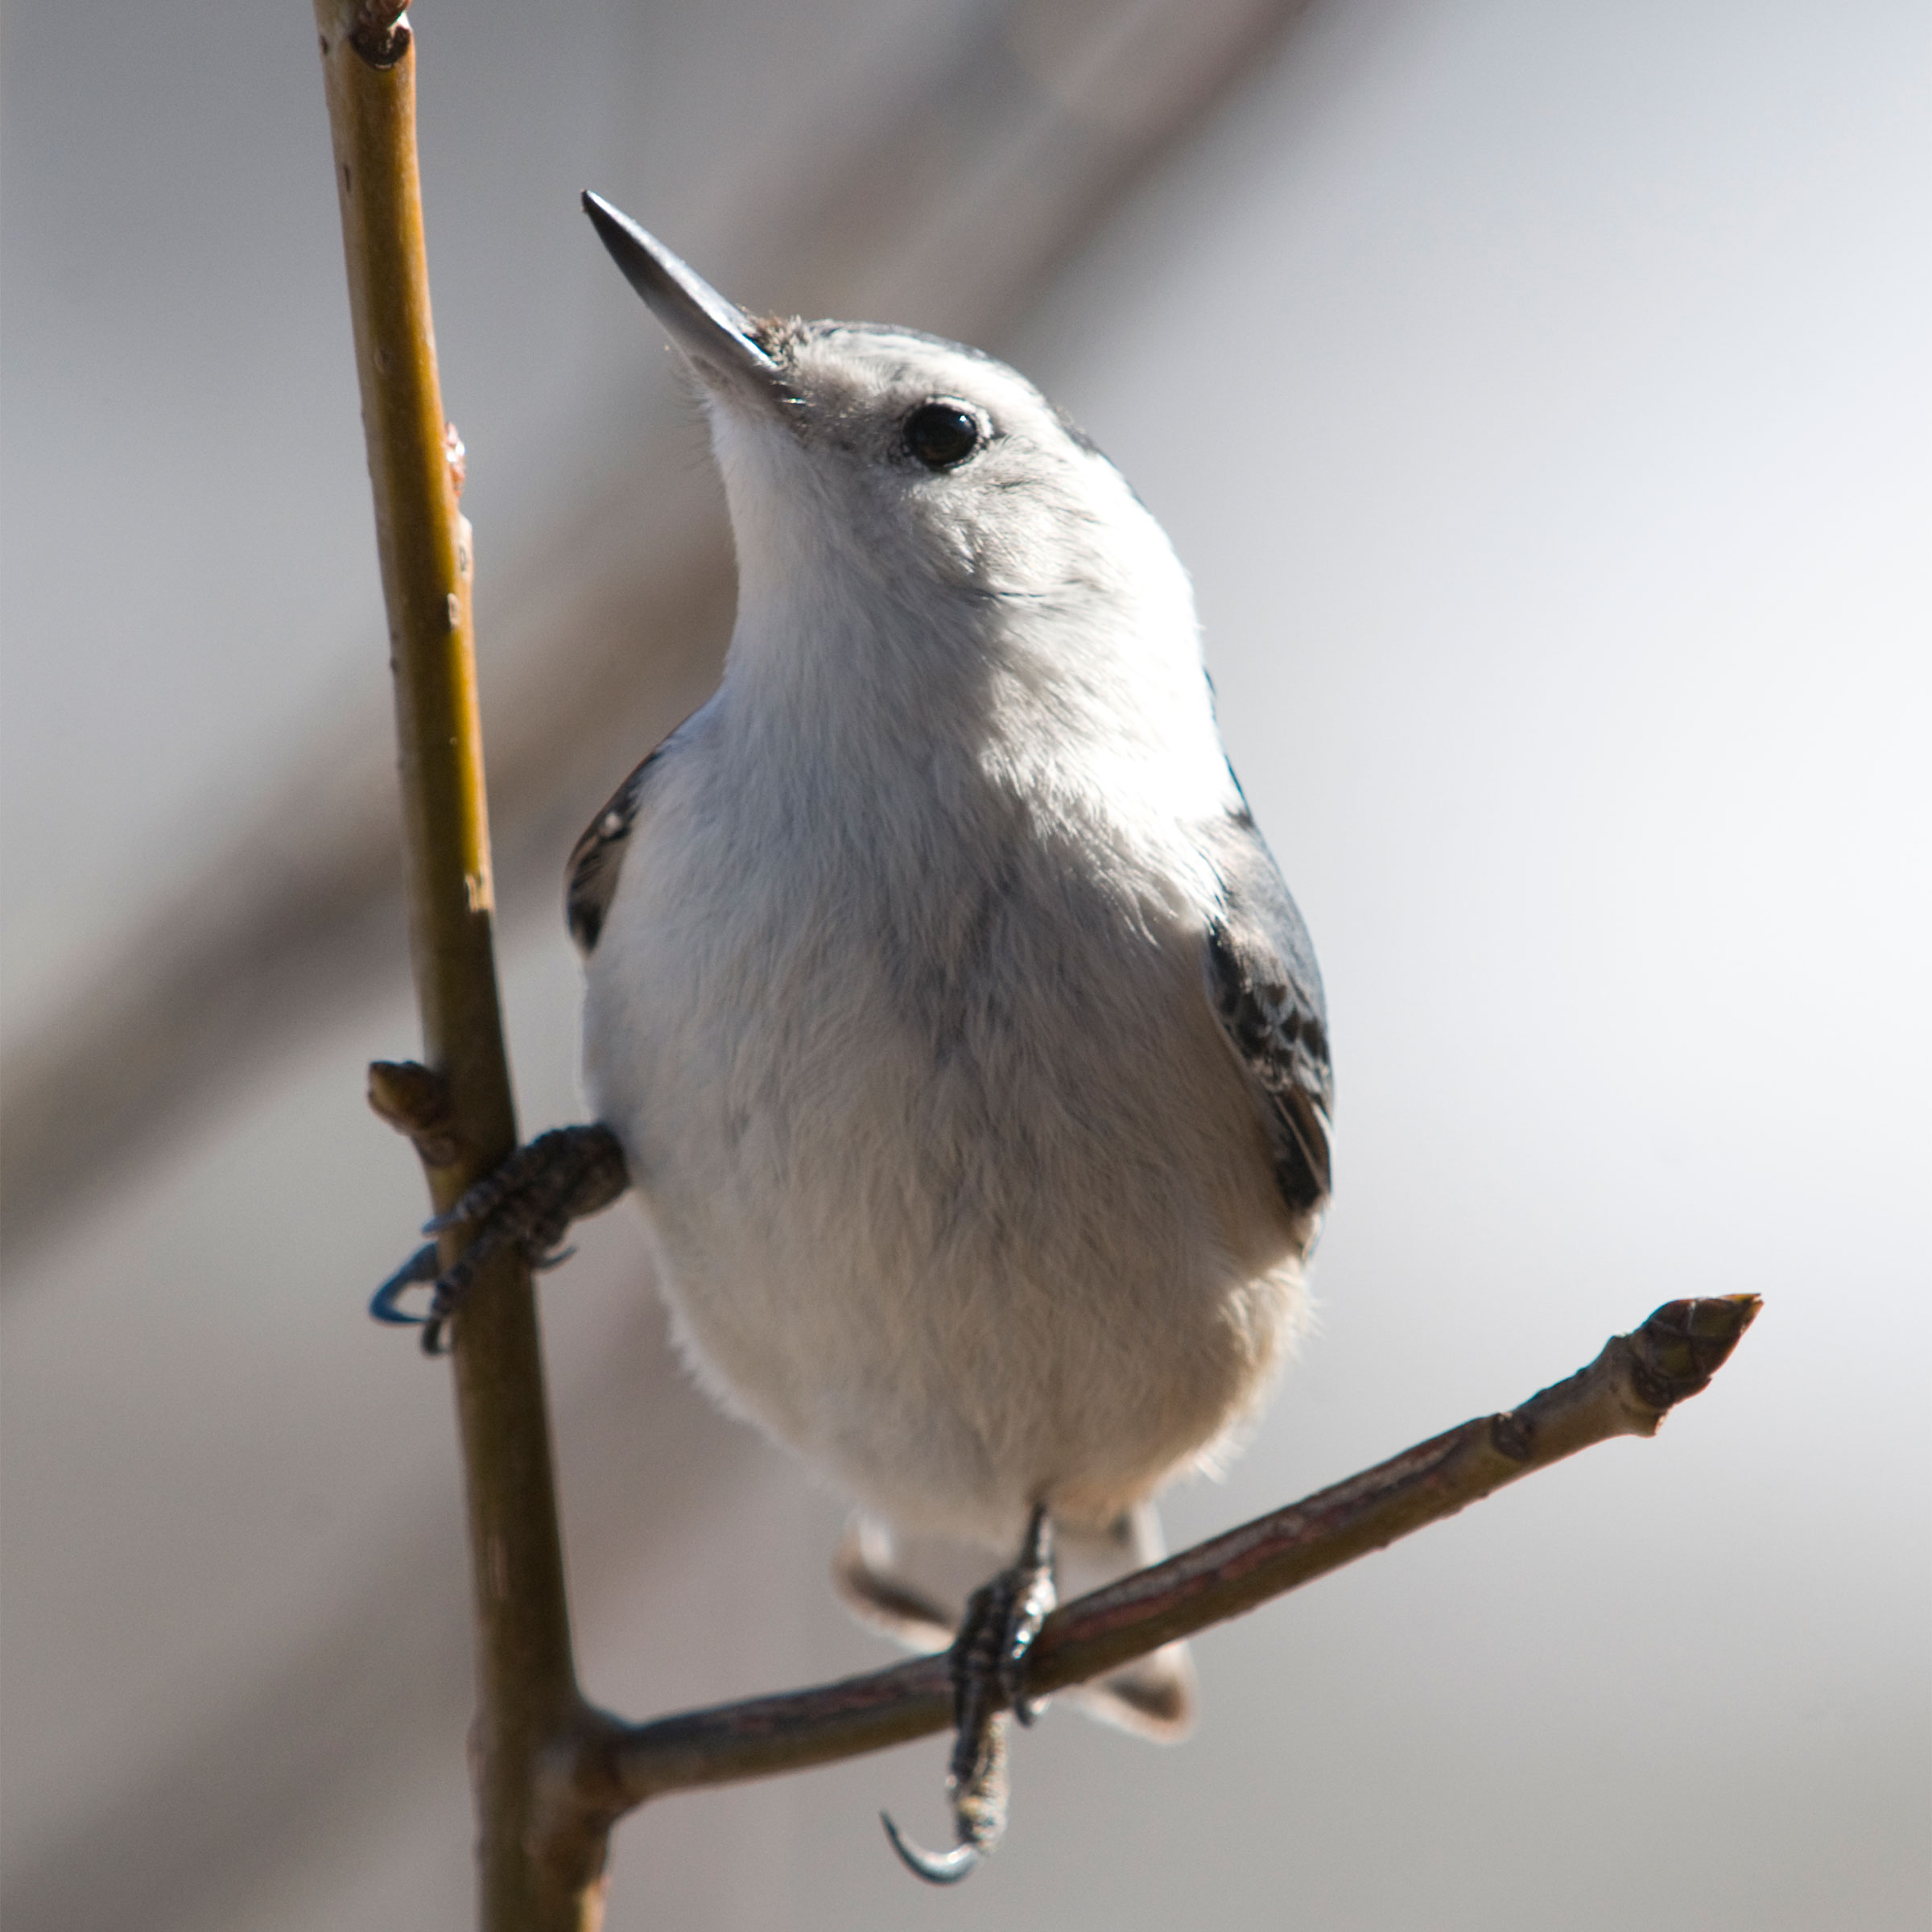 White-breasted Nuthatch. Michele Black/Great Backyard Bird Count